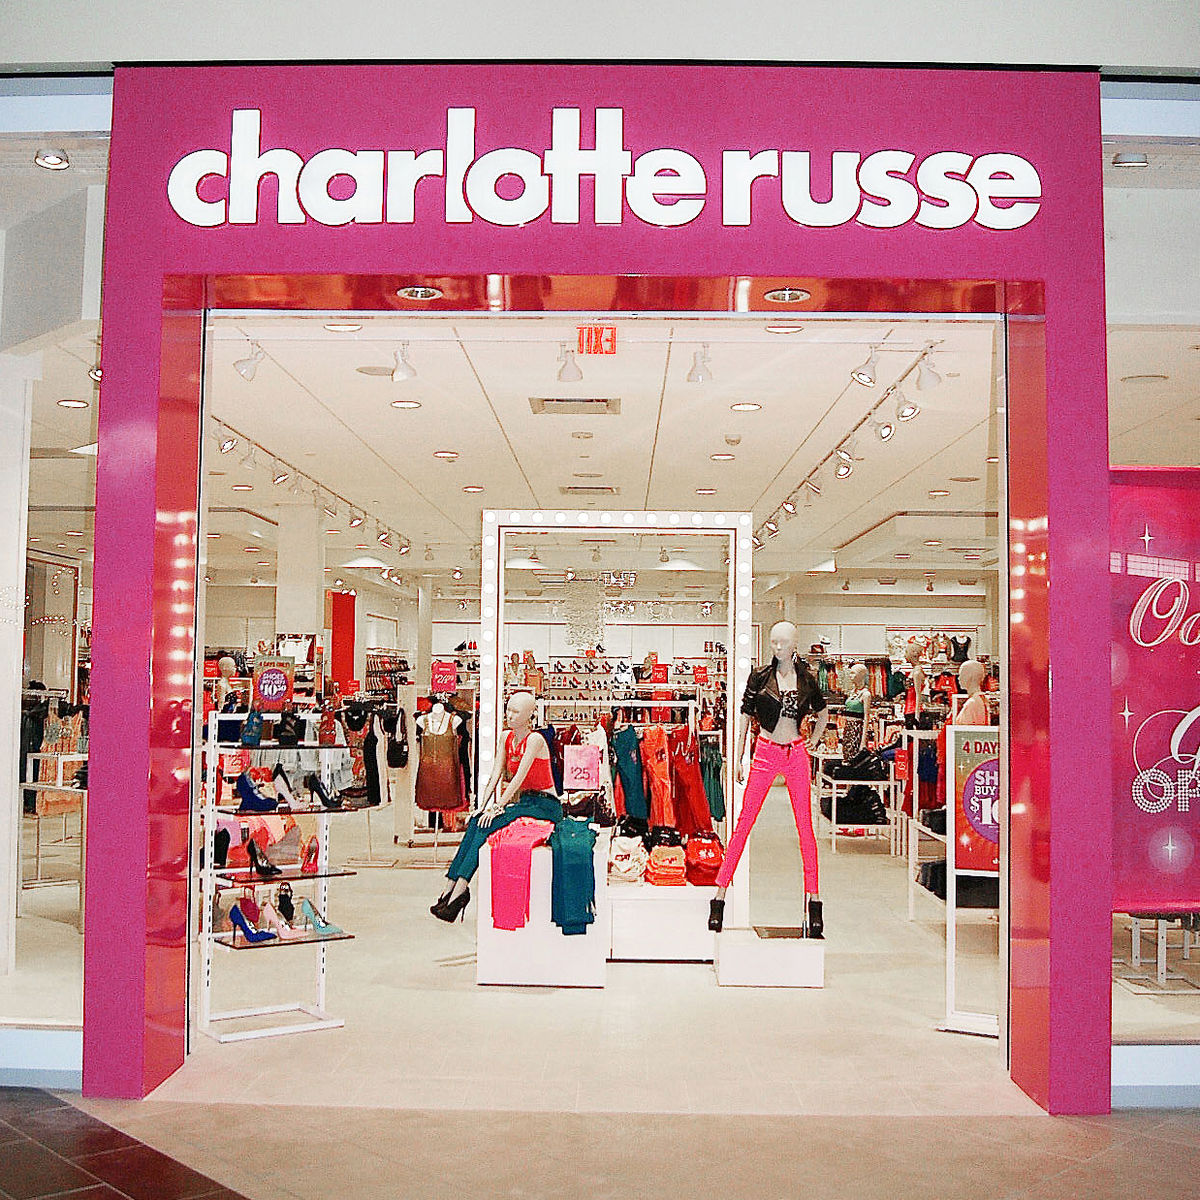 Shop the hottest fashion & beauty trends at Charlotte Russe for the best deals on dresses, shoes and jeans fit for every curve. Visit us online or at one of our store locations!